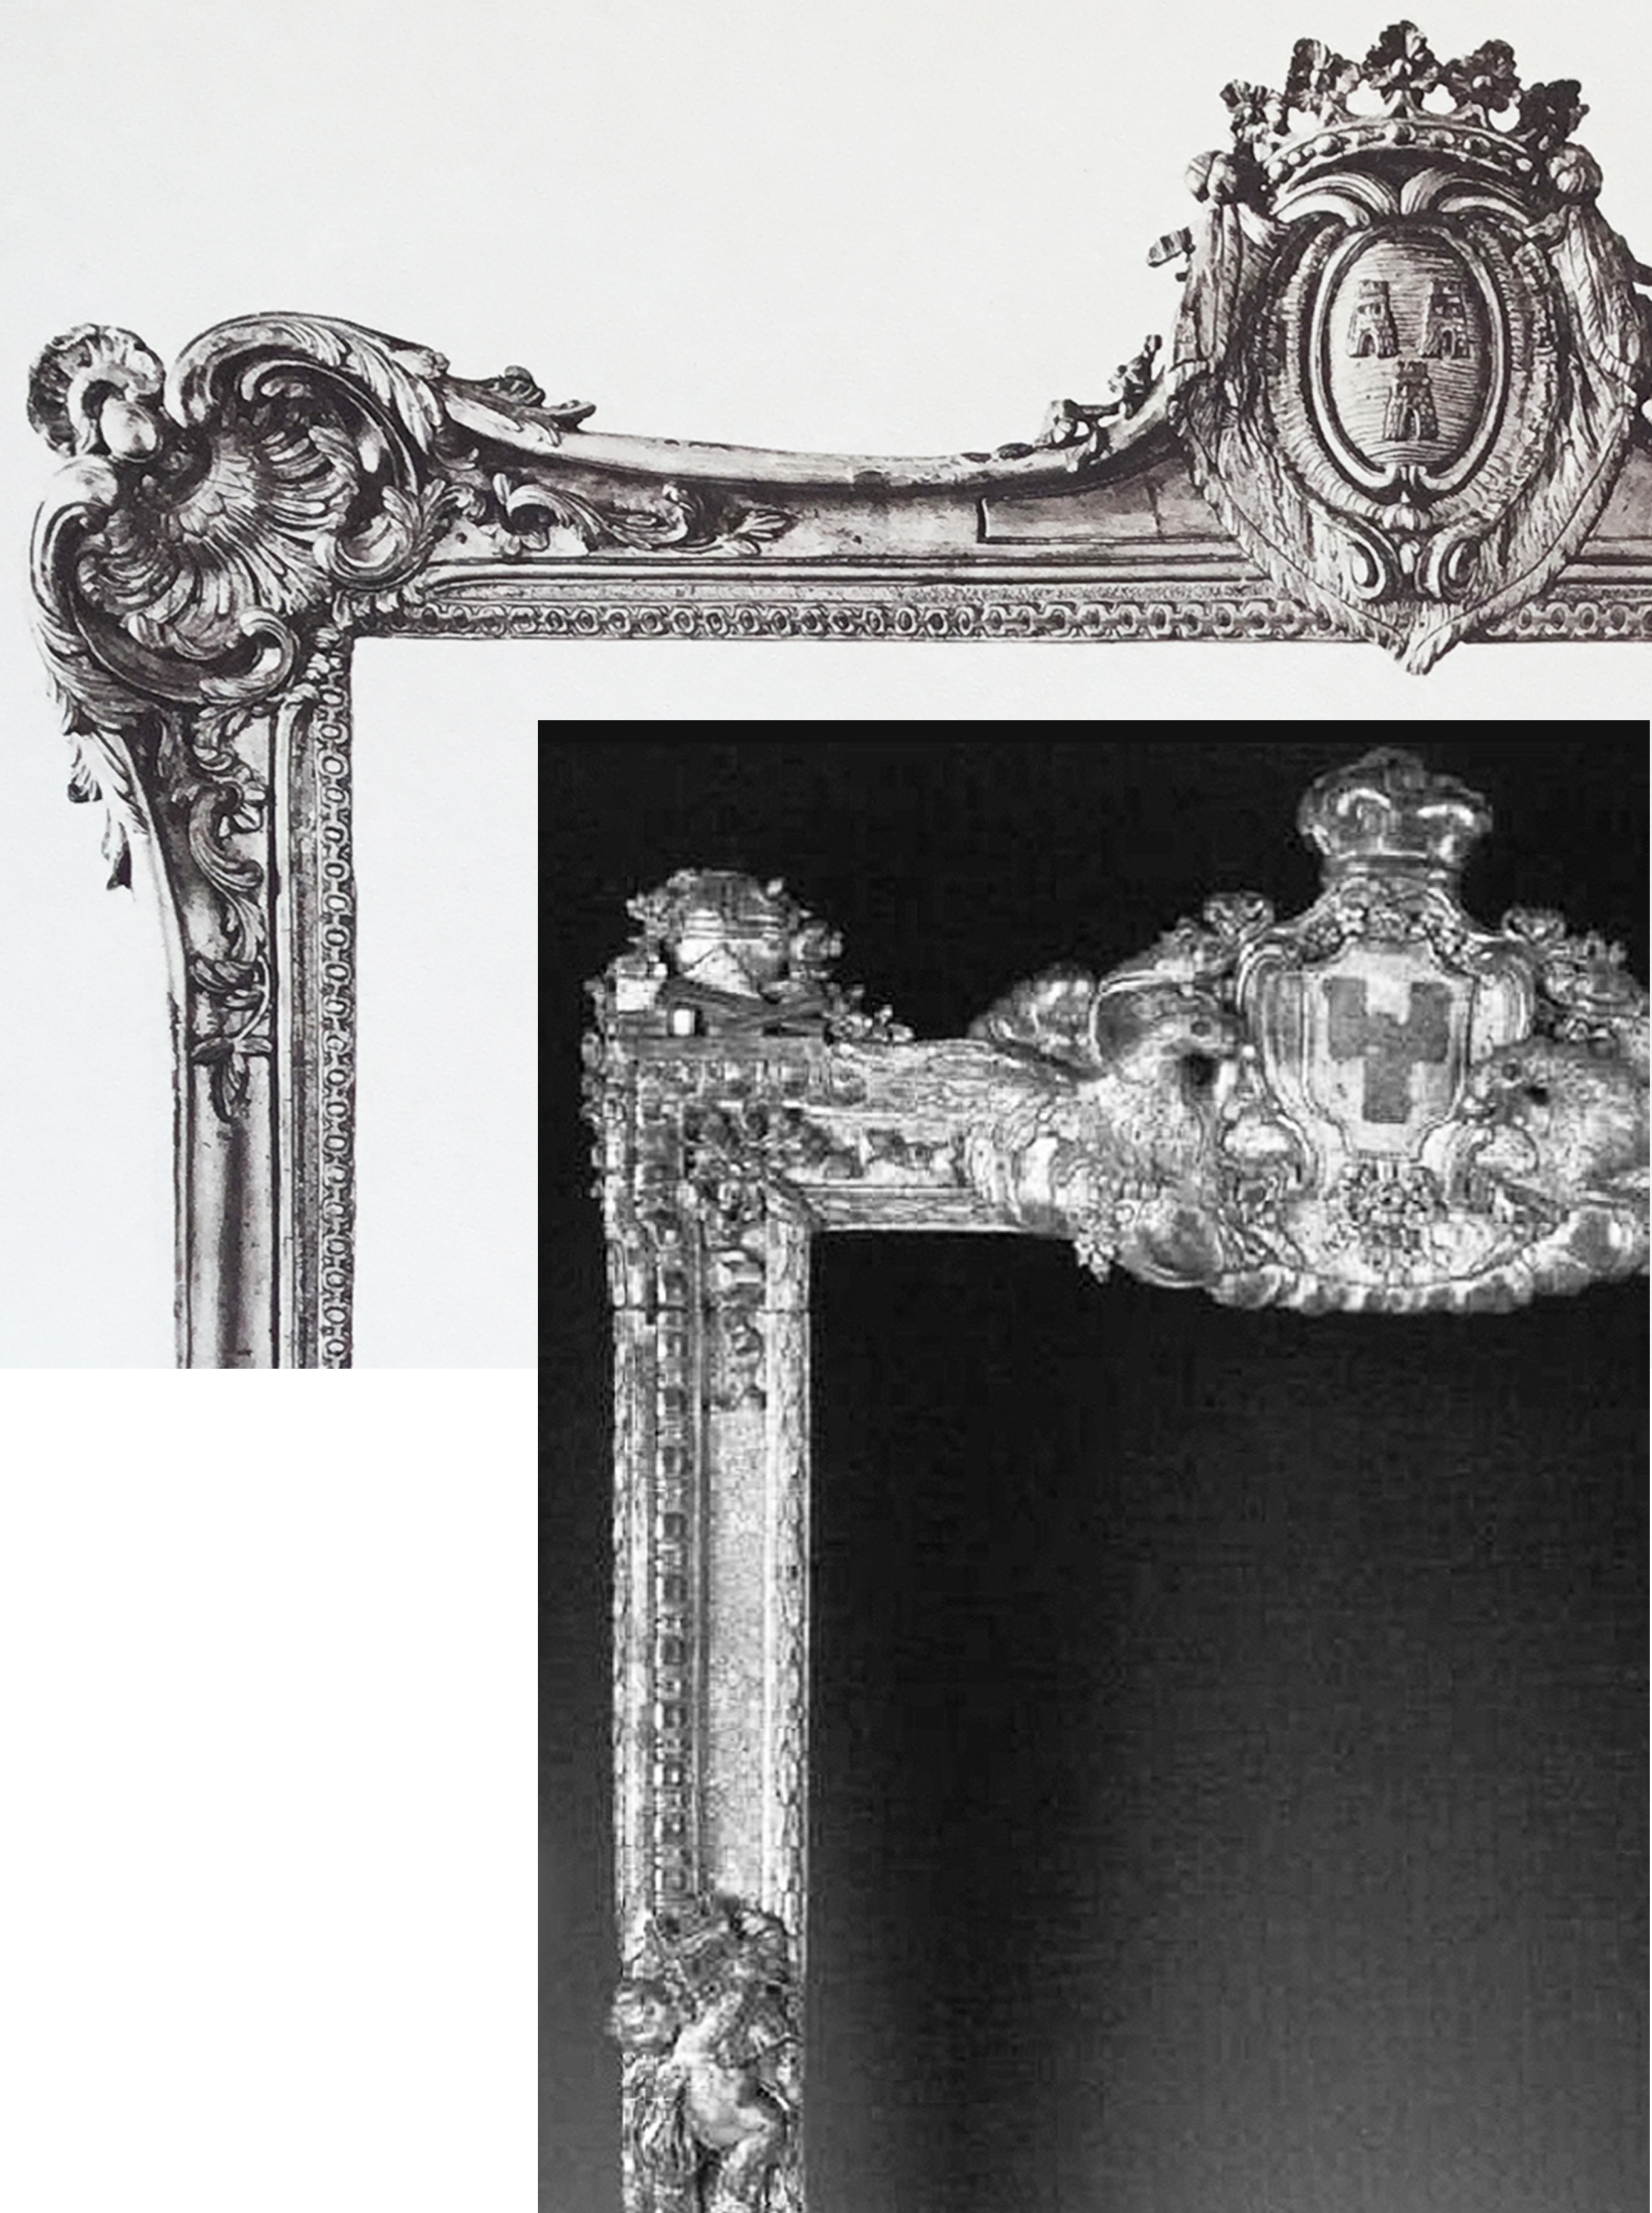 18C Plate 48 detail & detail of Pompadour frame on stand